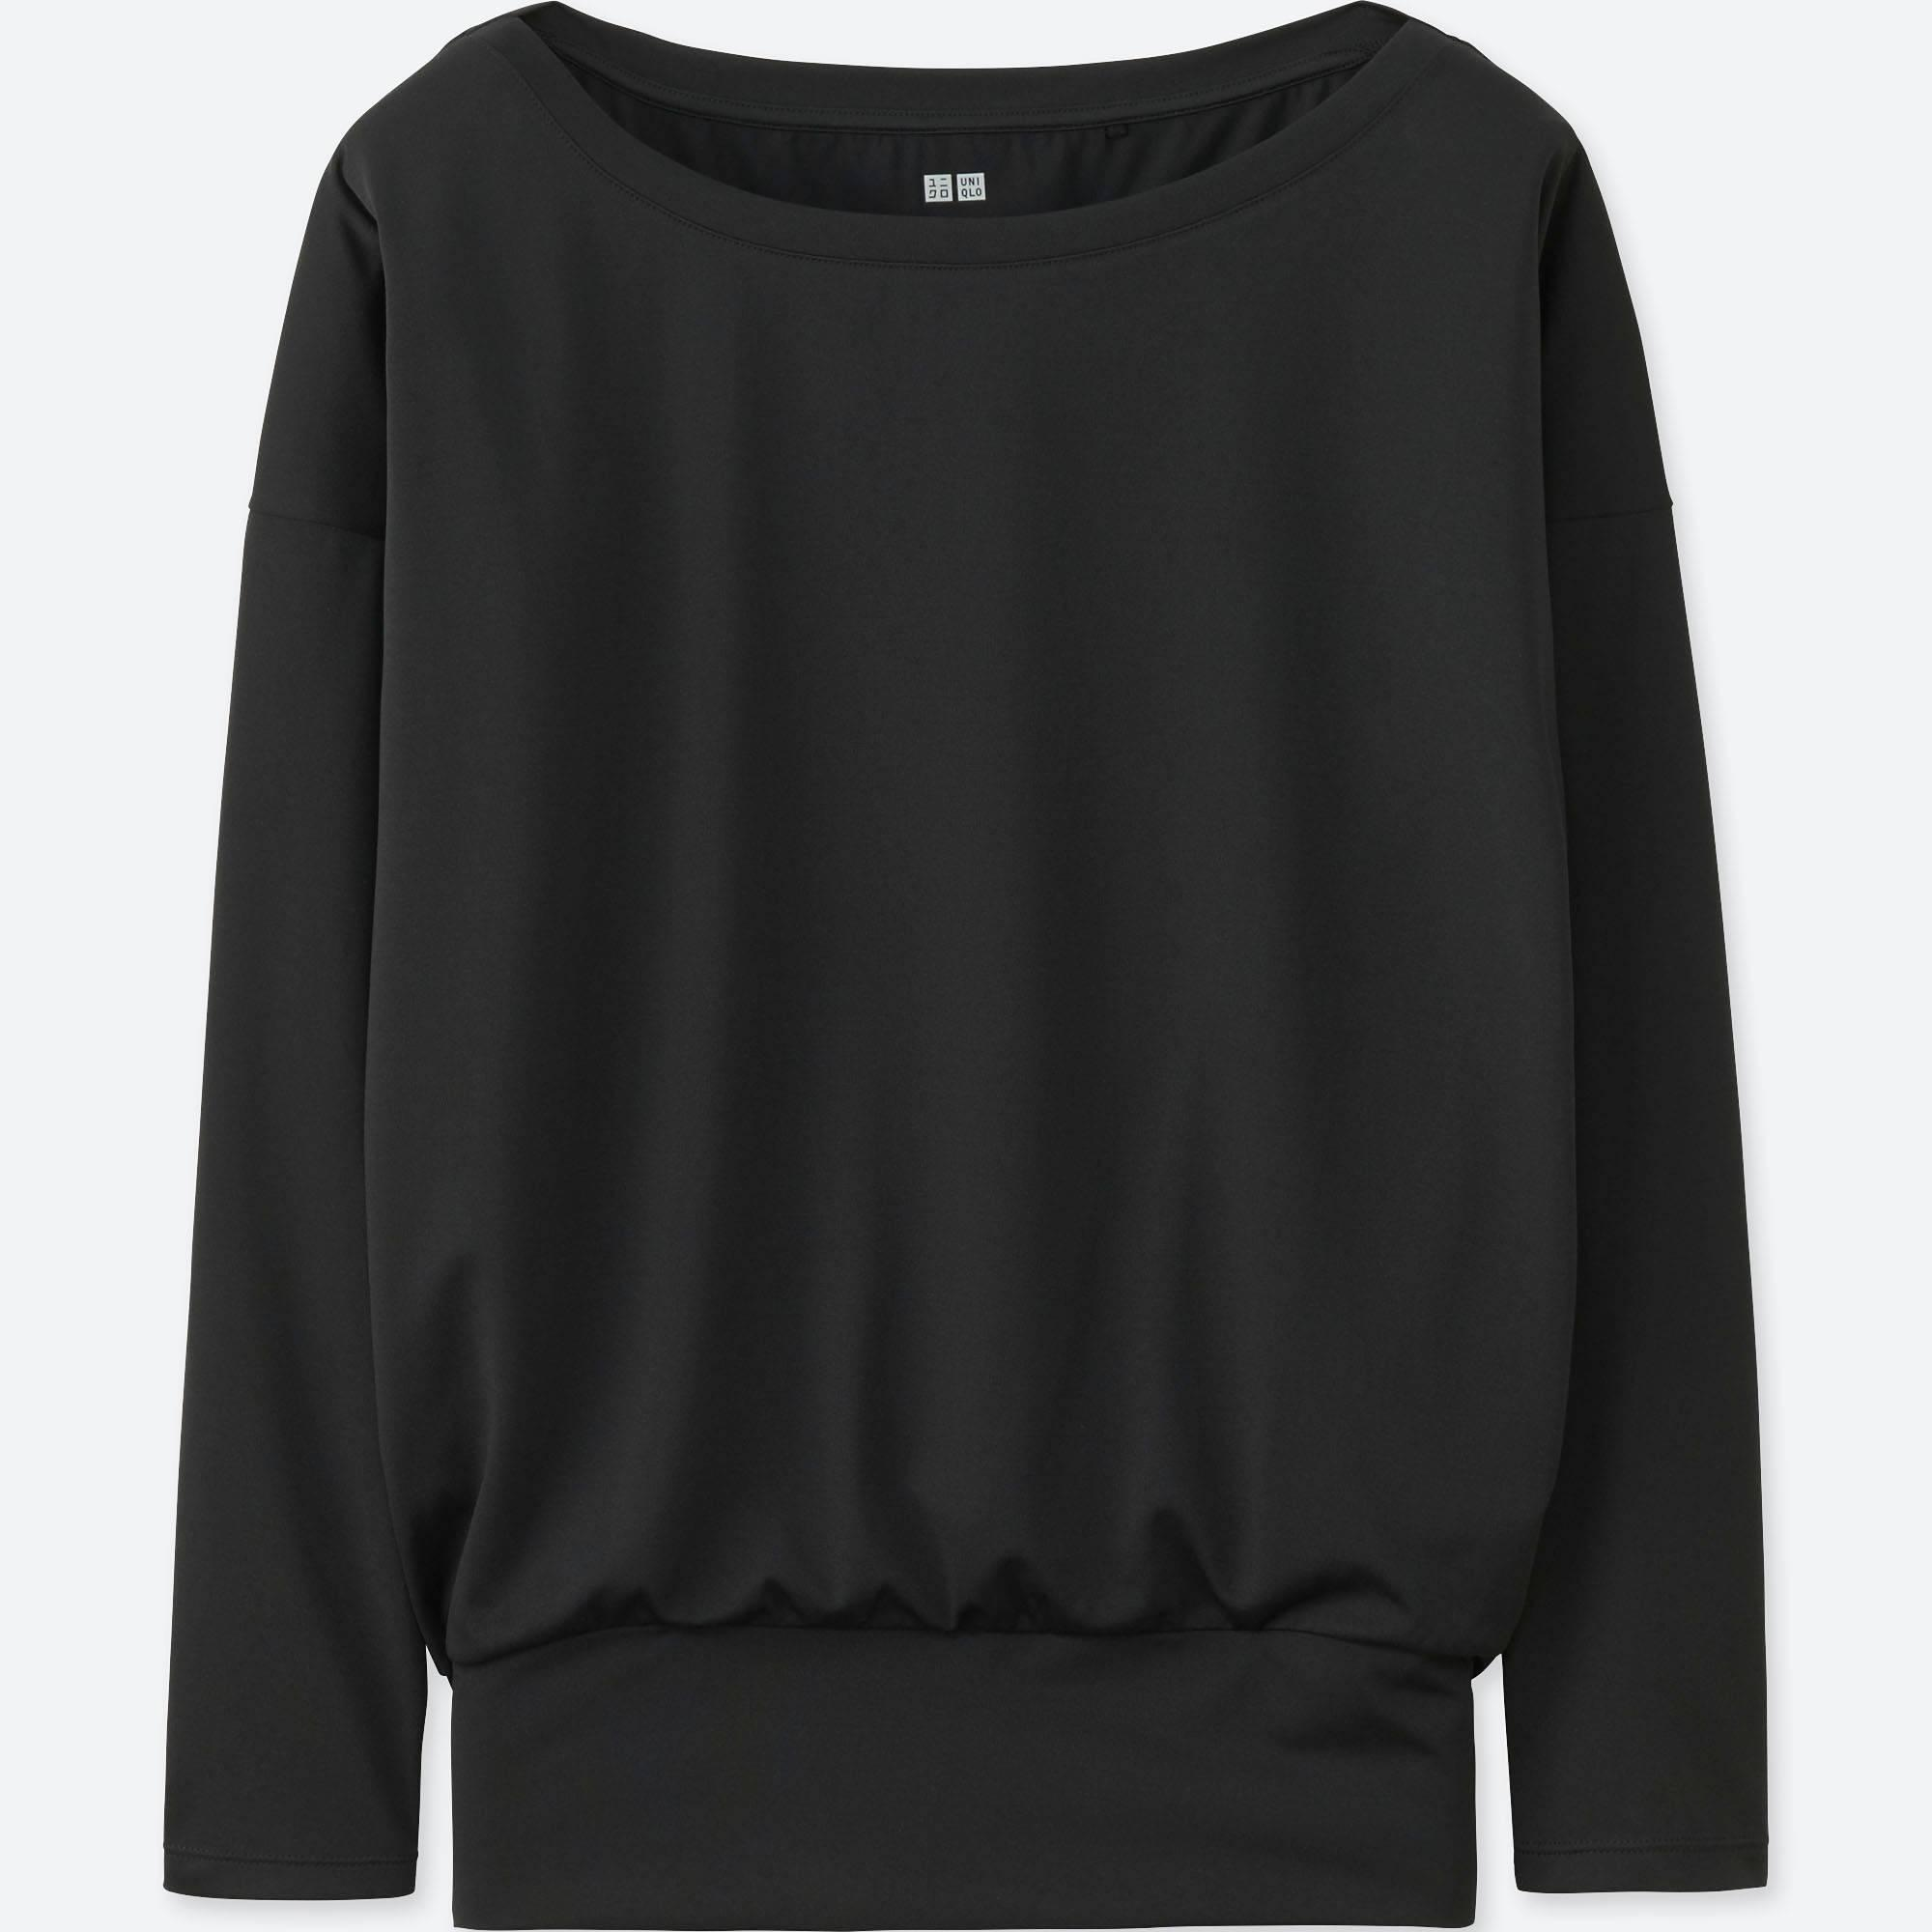 Uniqlo Women Airism Yoga Long-sleeve T-shirt In Black